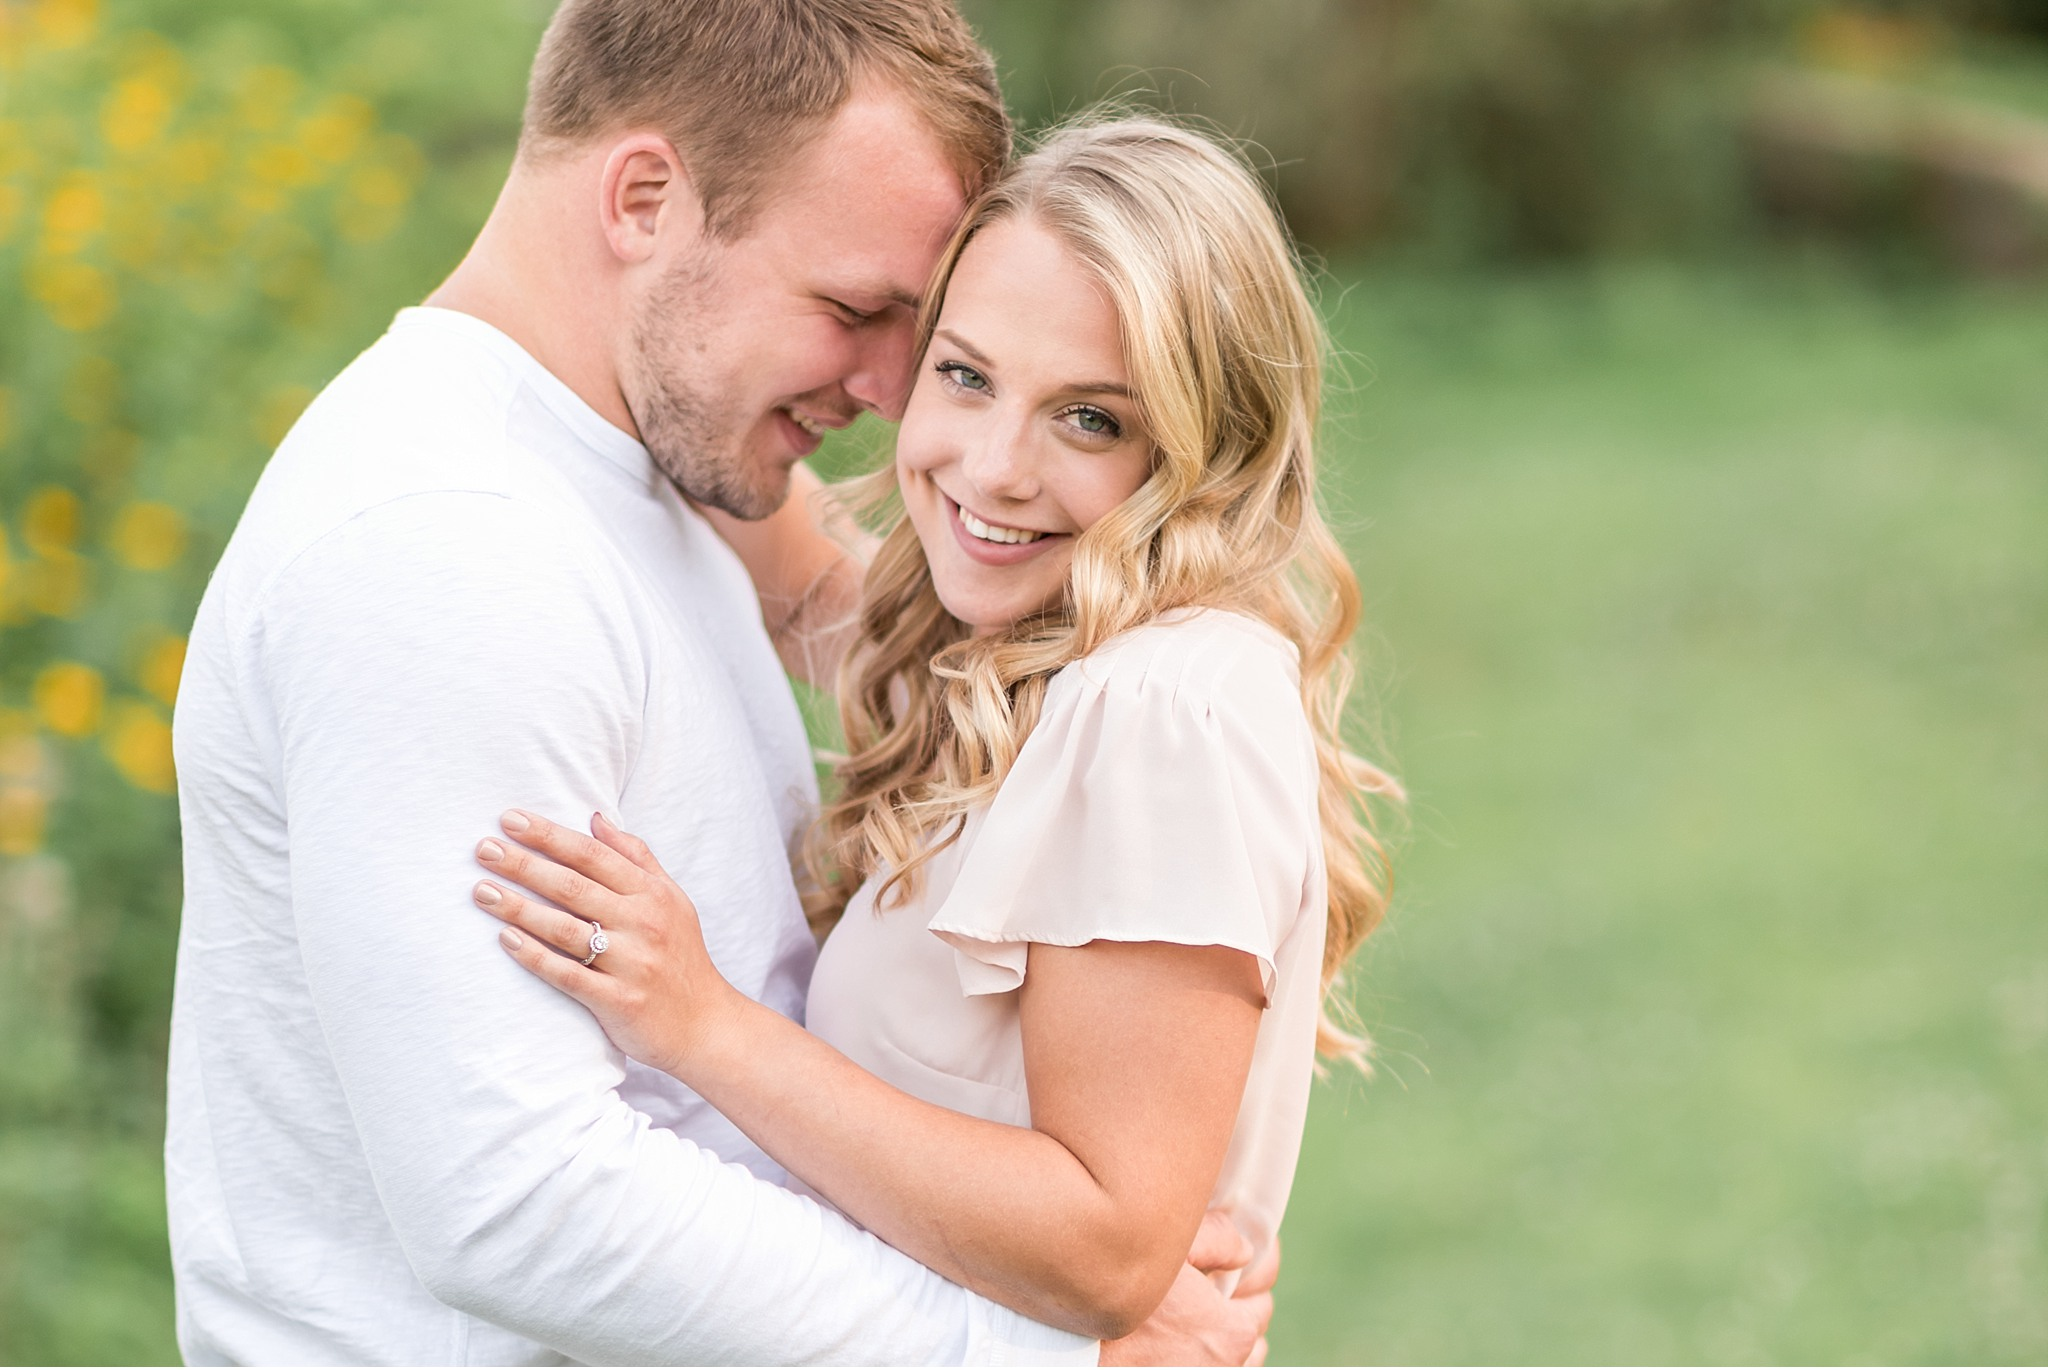 Grings Mill Berks County Light and Airy engagement session at golden sun Wedding Photography photo_1806.jpg